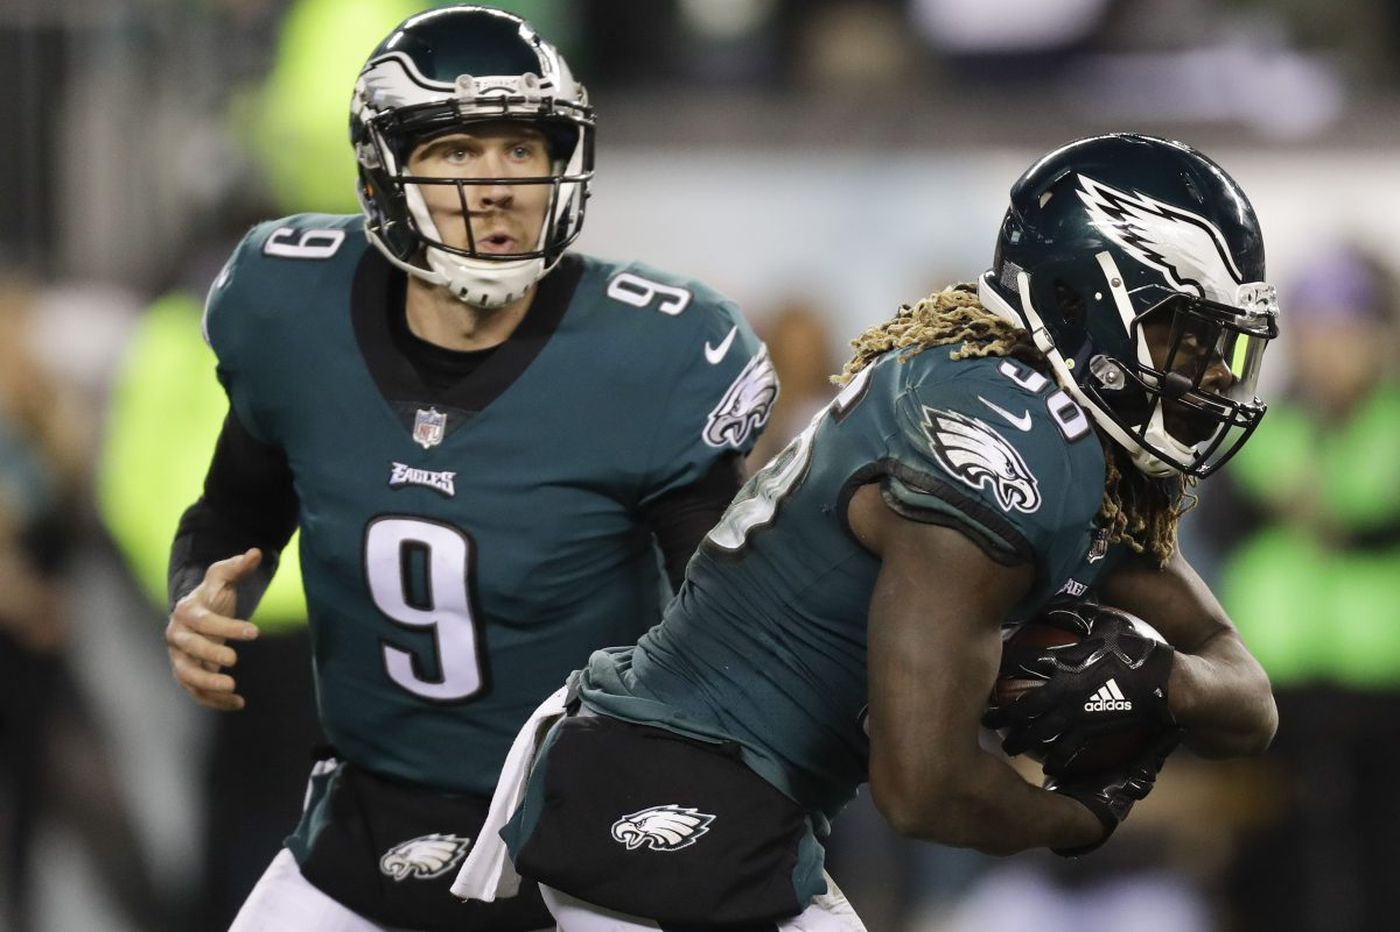 RPO: What are the Eagles' run-pass option plays?